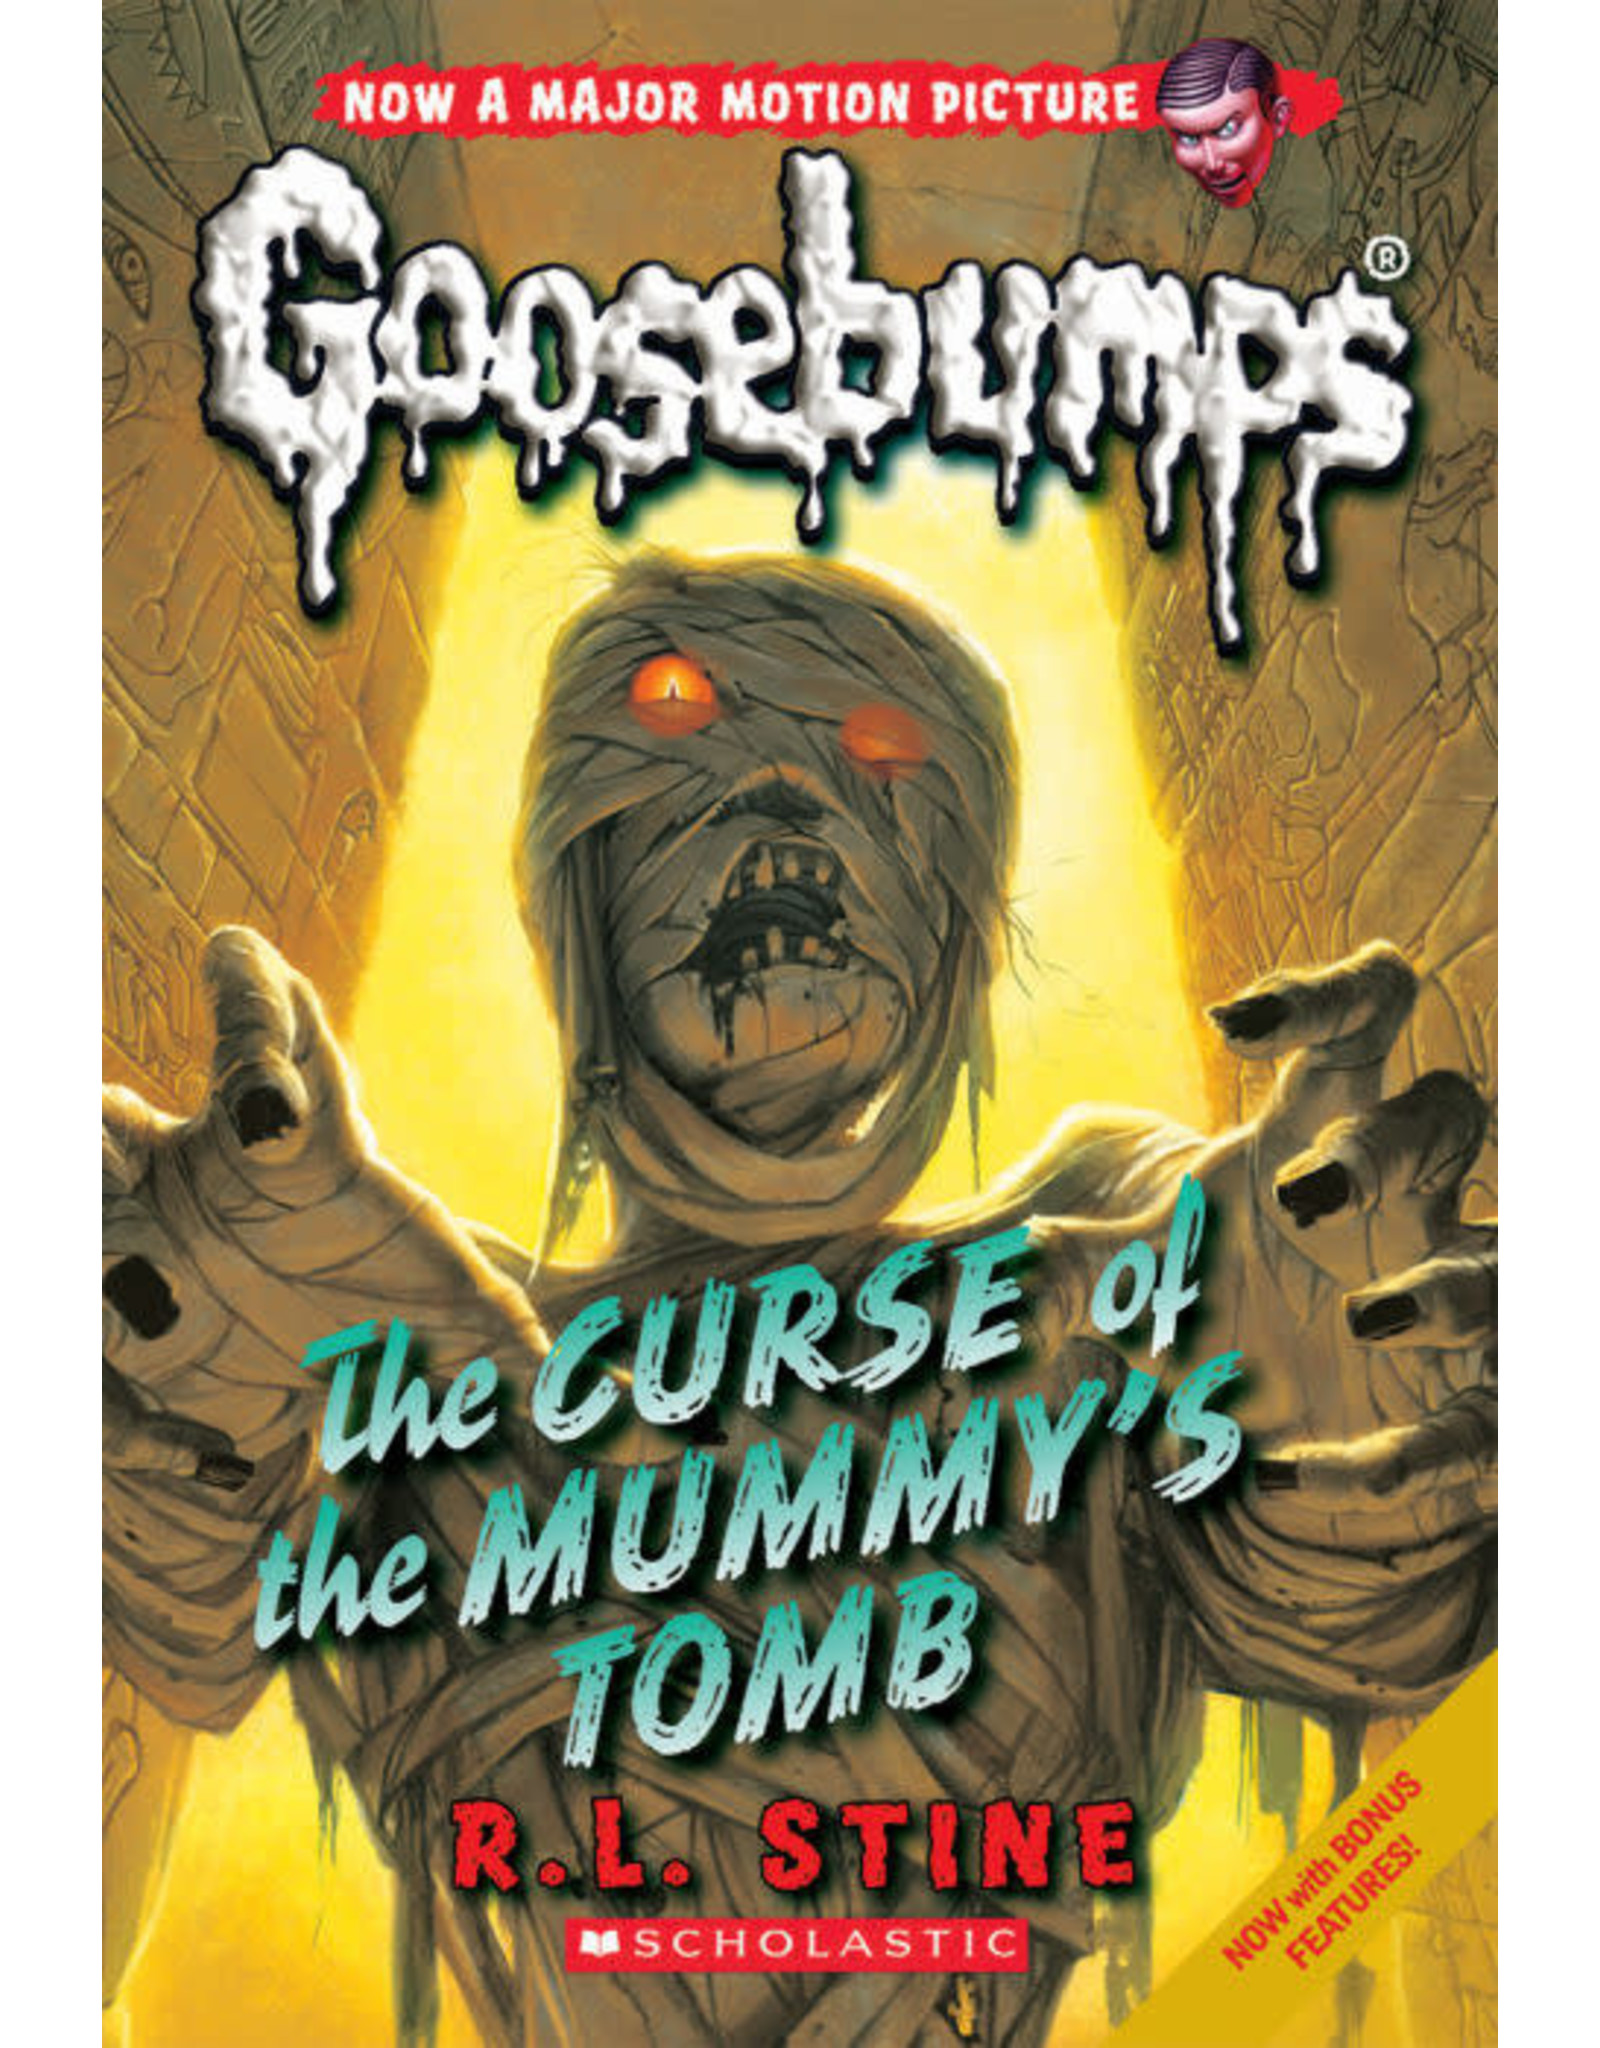 Scholastic Classic Goosebumps #6: The Curse of the Mummy's Tomb